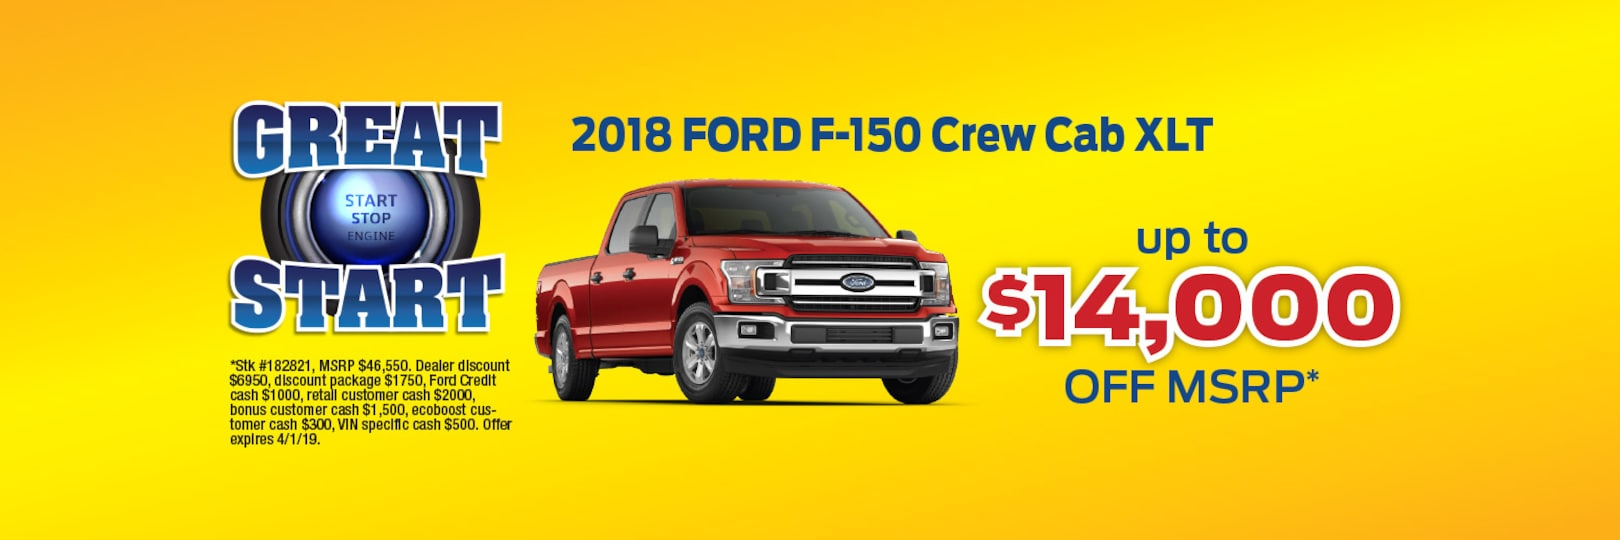 New 2019 2020 Used Ford Cars For Sale In Weatherford Tx 2010 F 150 Fuel Filter Wrench Previous Next